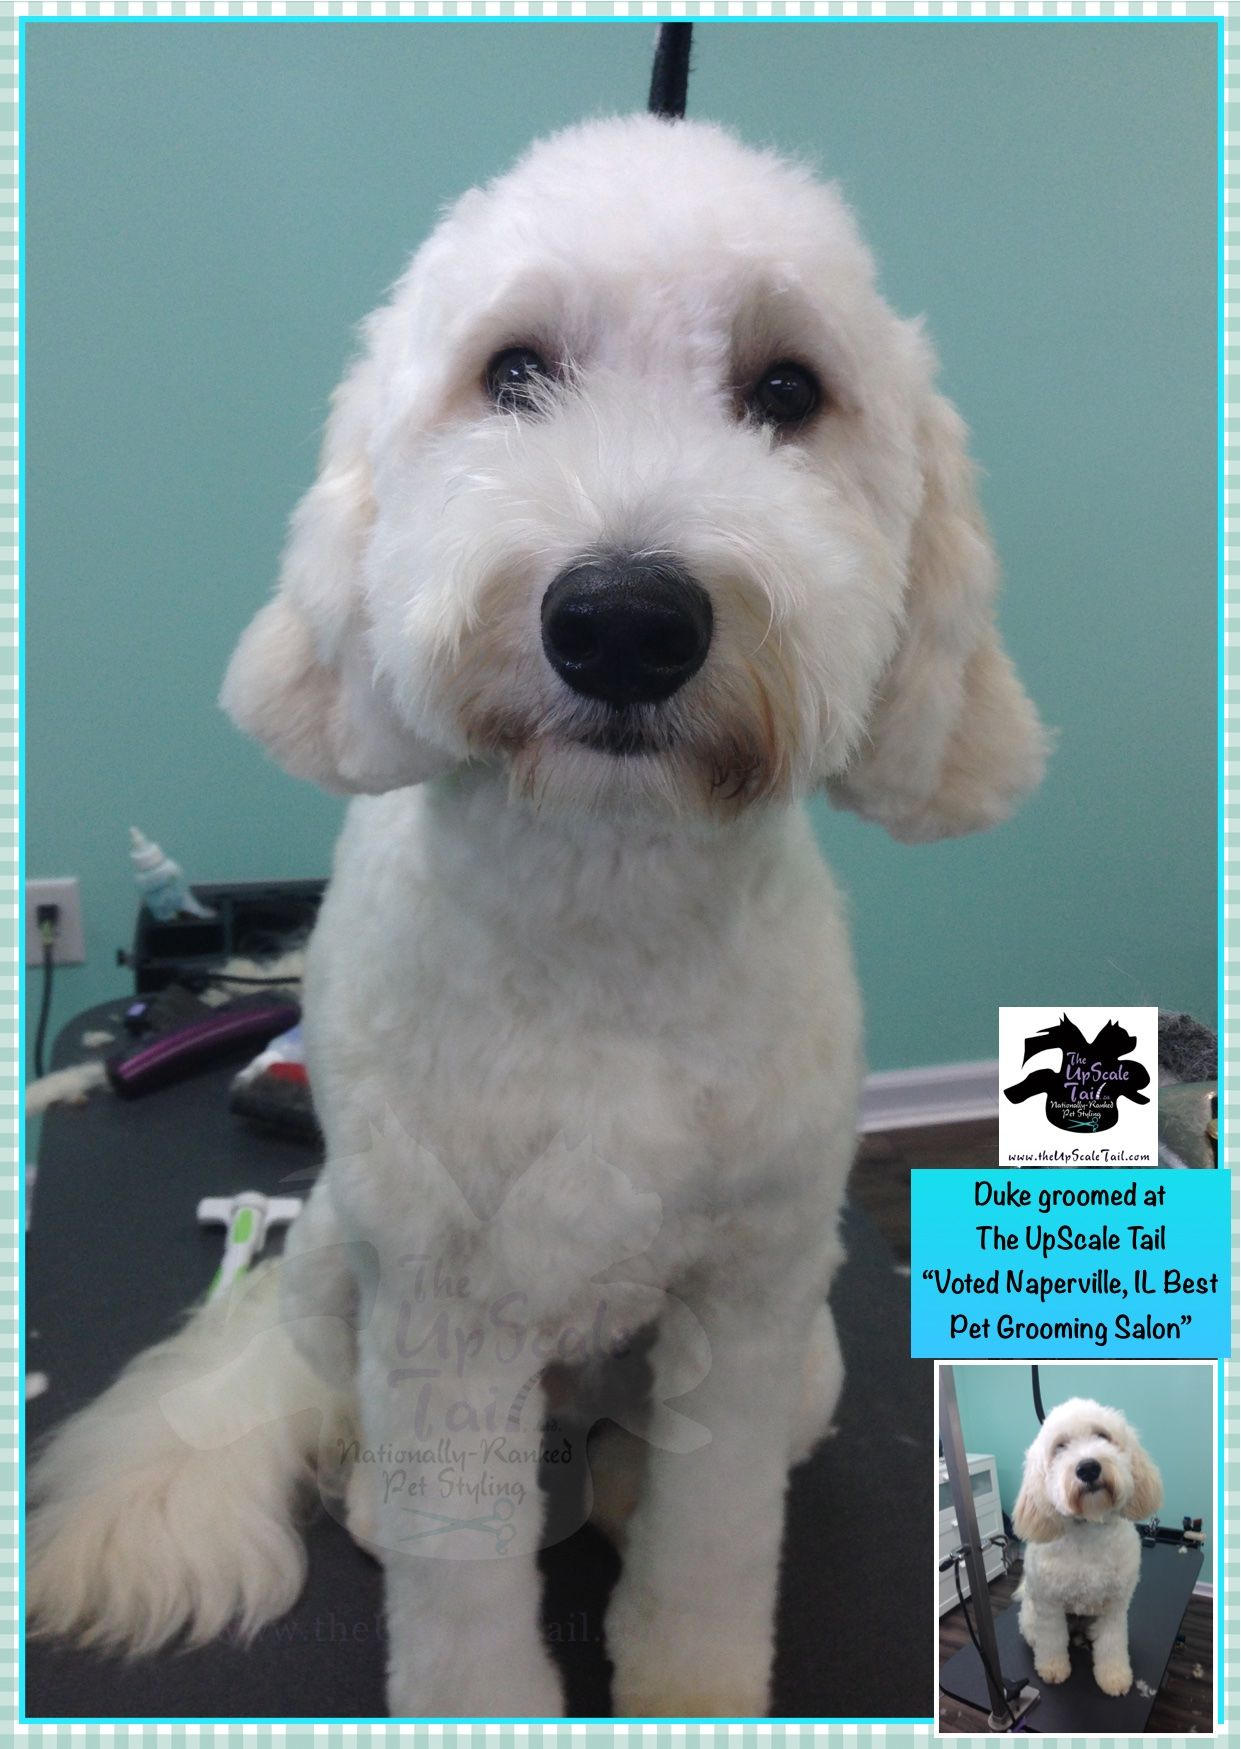 Duke, grooming makeover at The UpScale Tail, Naperville